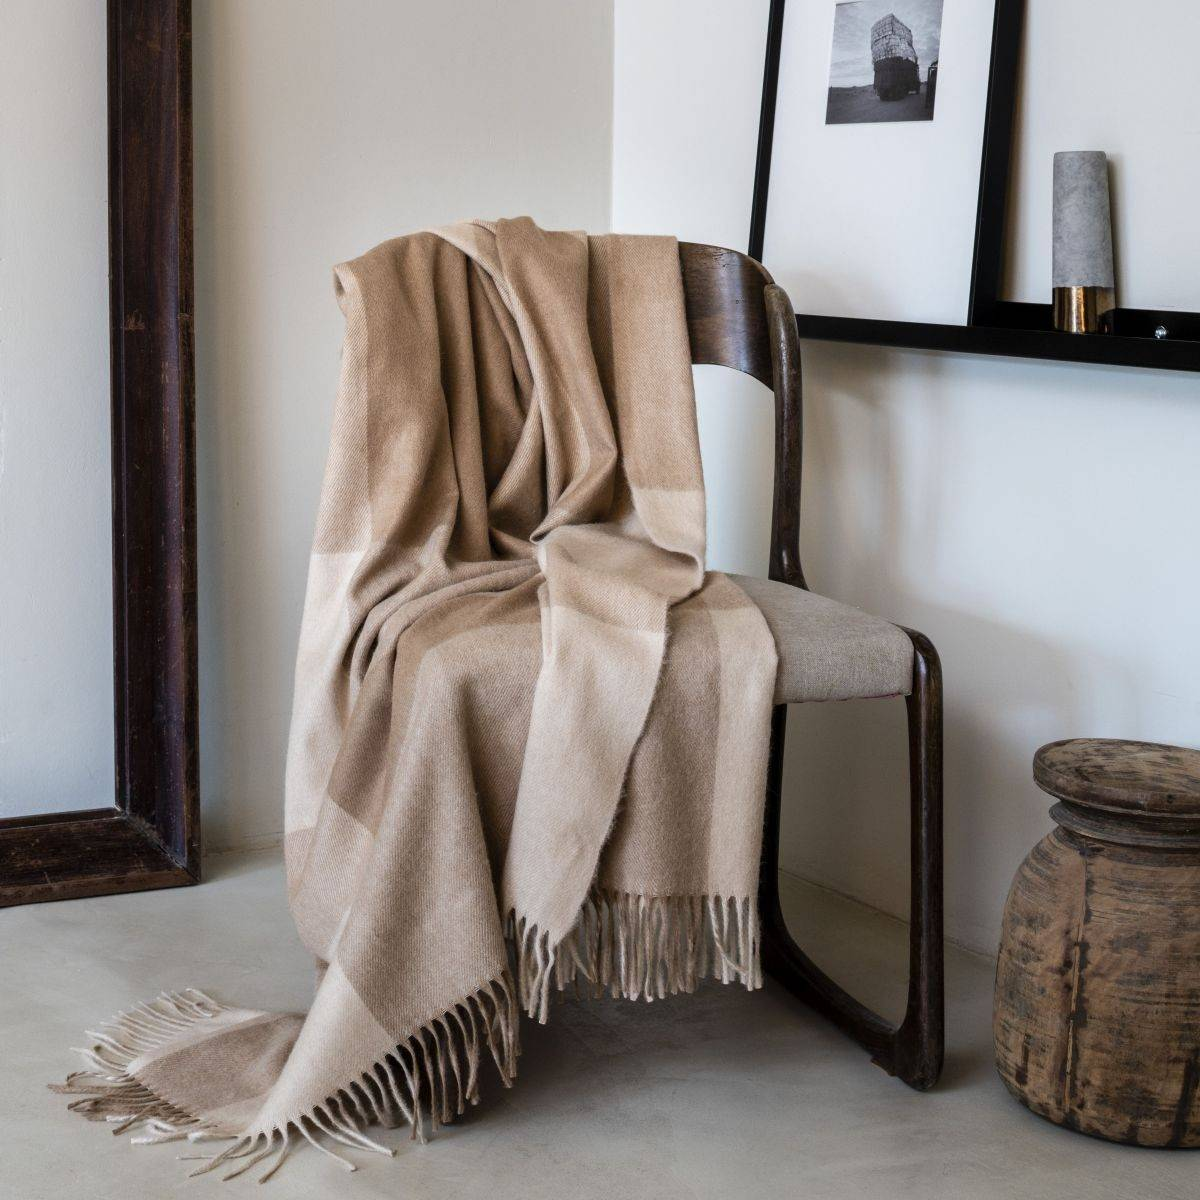 Pure camel hair throws: Baby Camel throw.